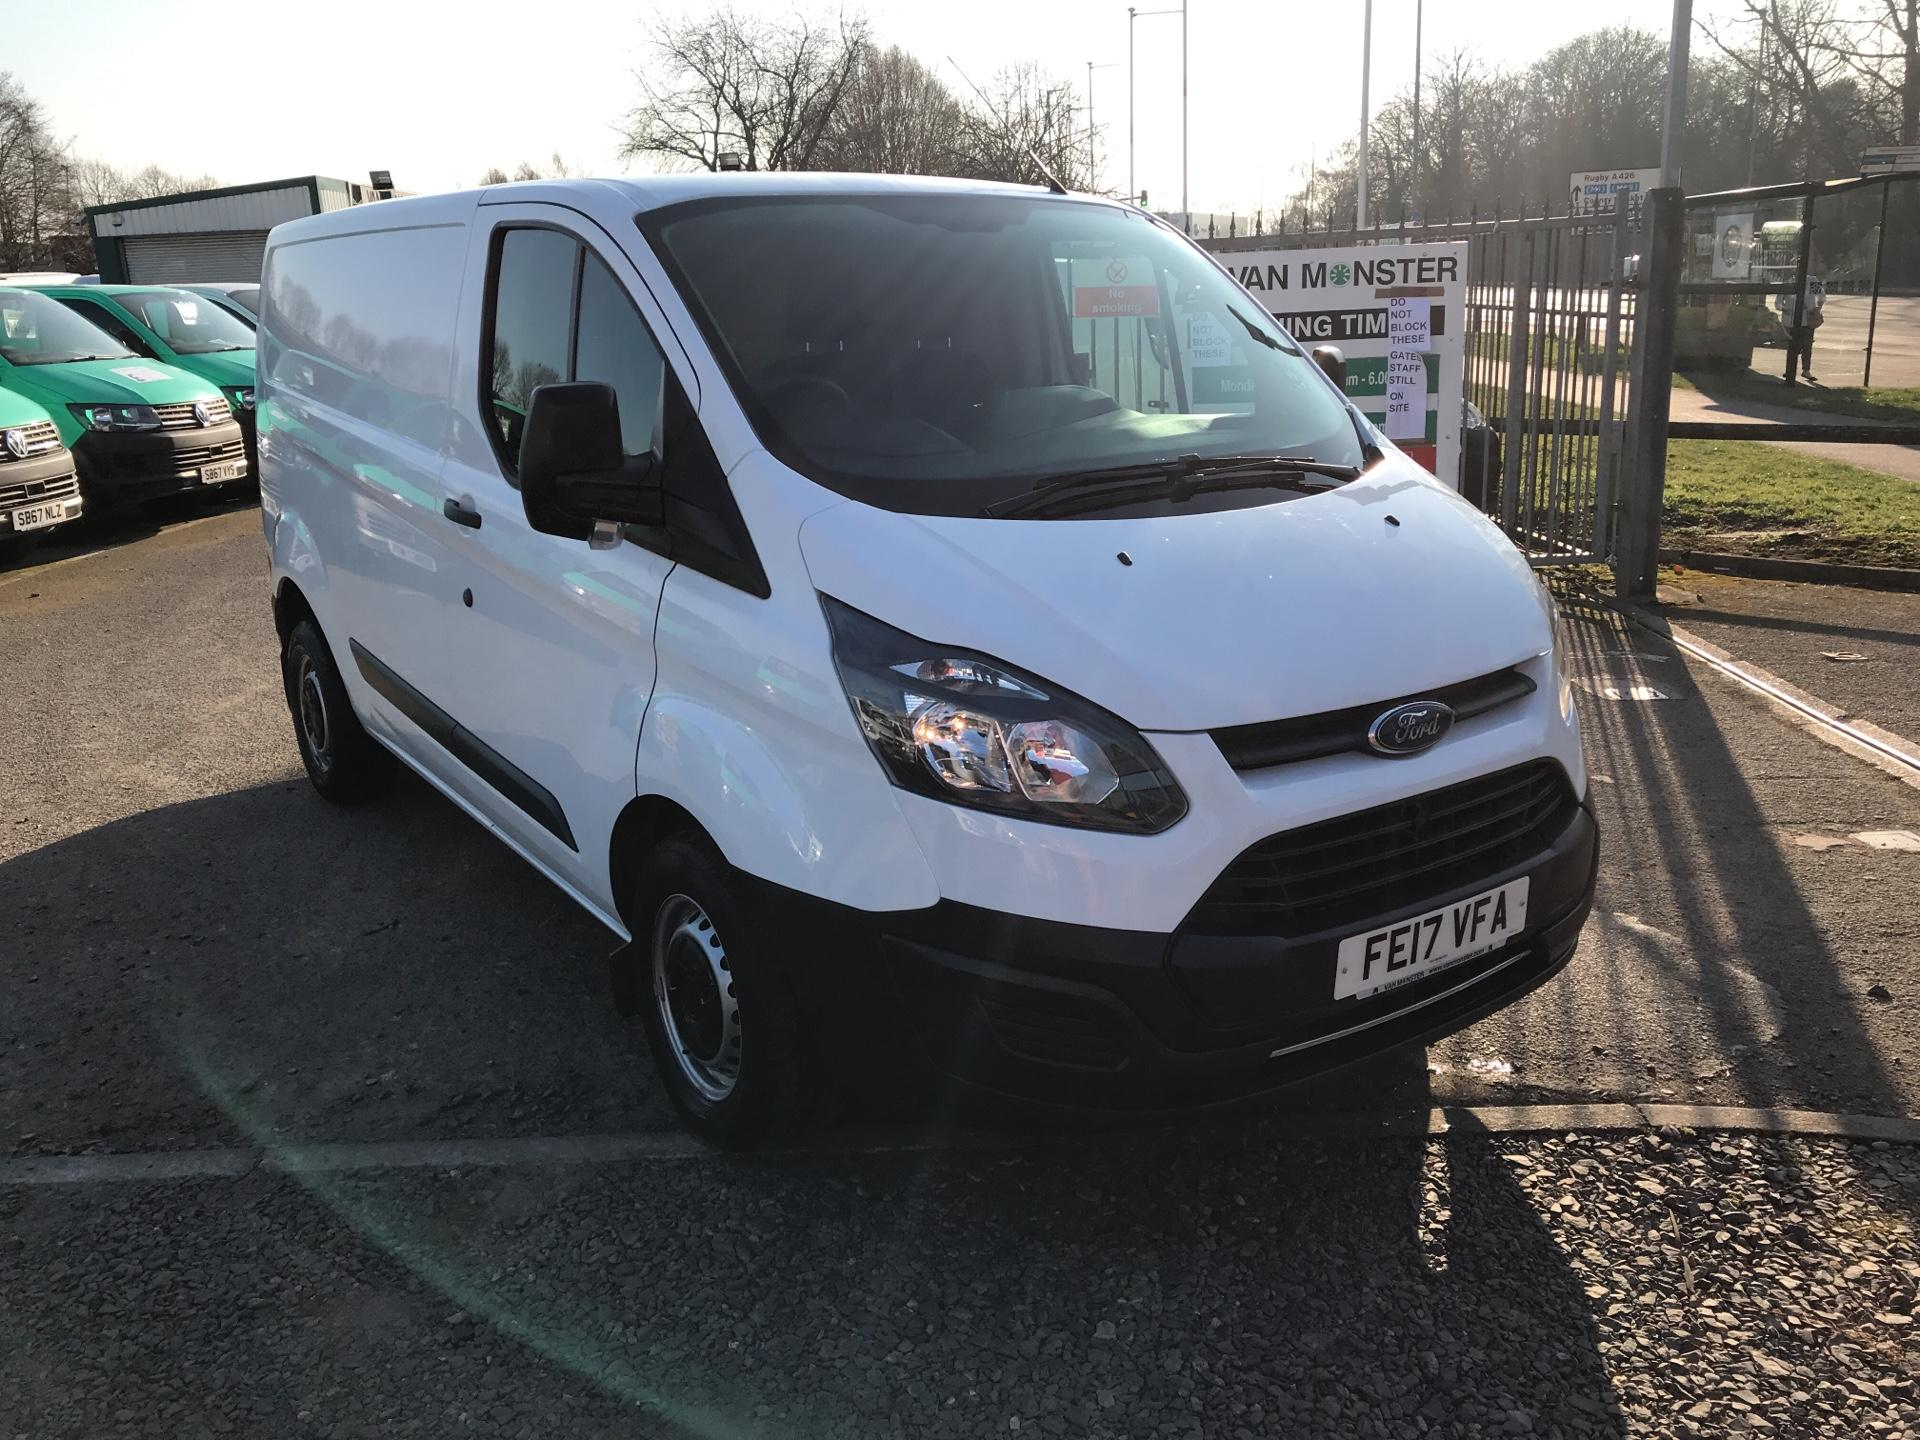 2017 Ford Transit Custom 290 L1 DIESEL FWD 2.0 TDCI 105PS LOW ROOF VAN EURO 6 (FE17VFA)